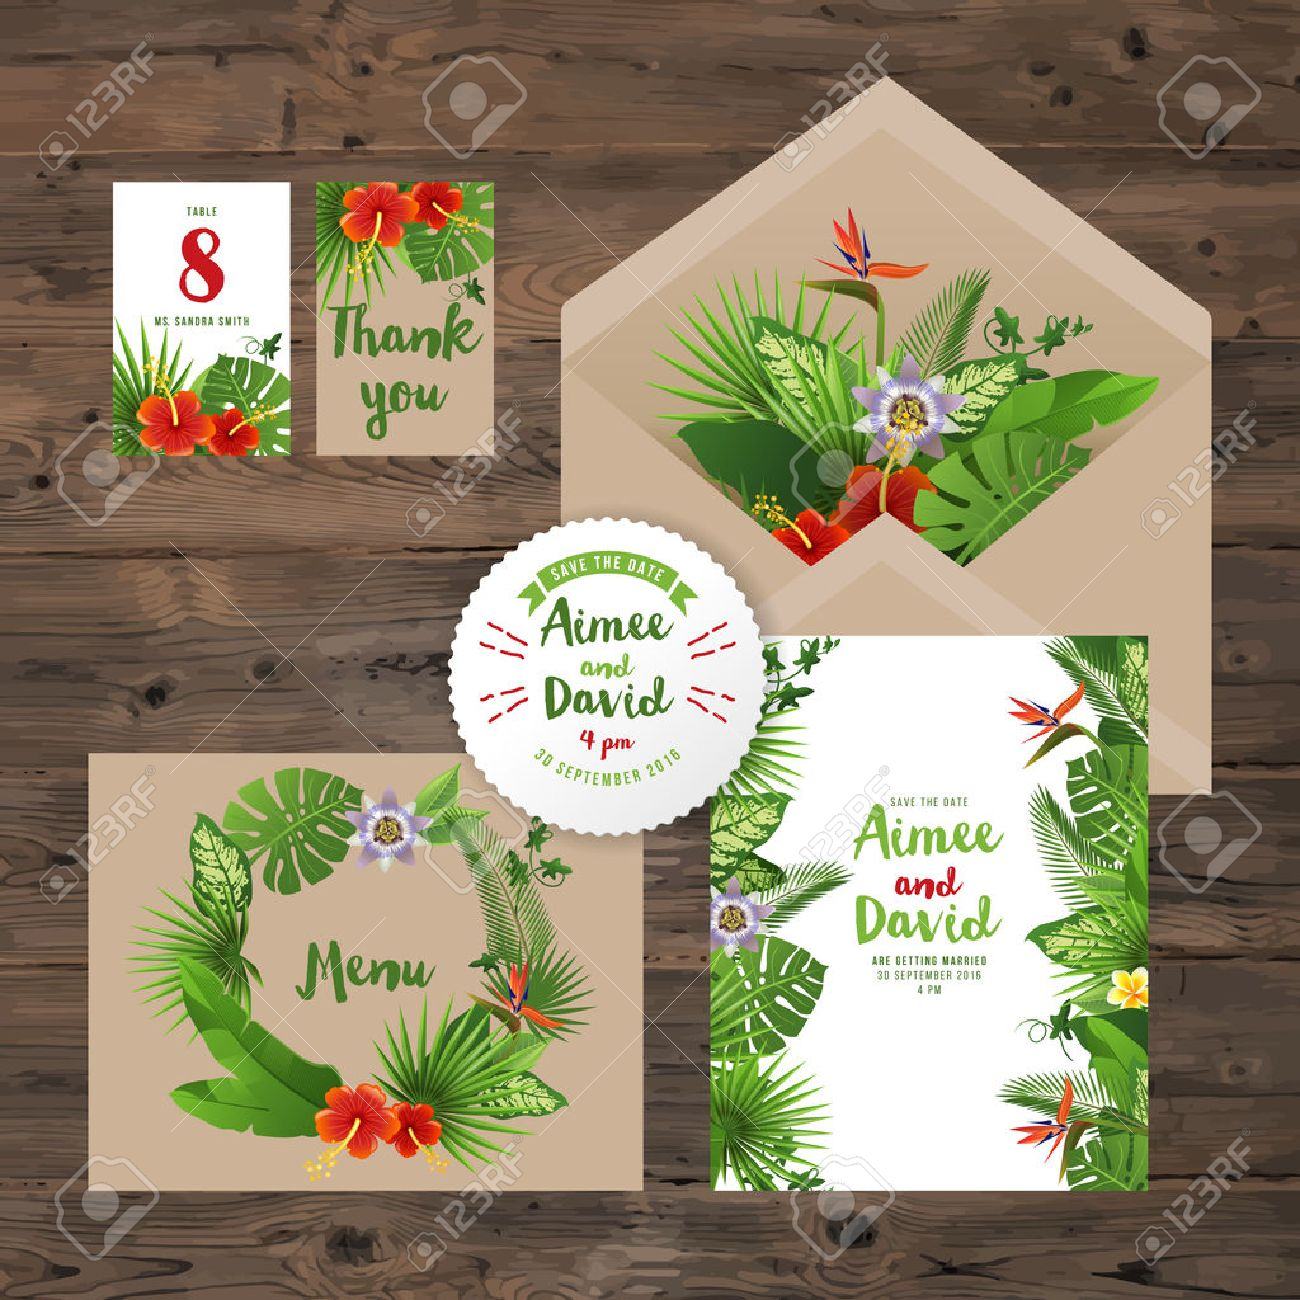 wedding invitation cards with tropical plants and flowers Stock Vector - 40339322